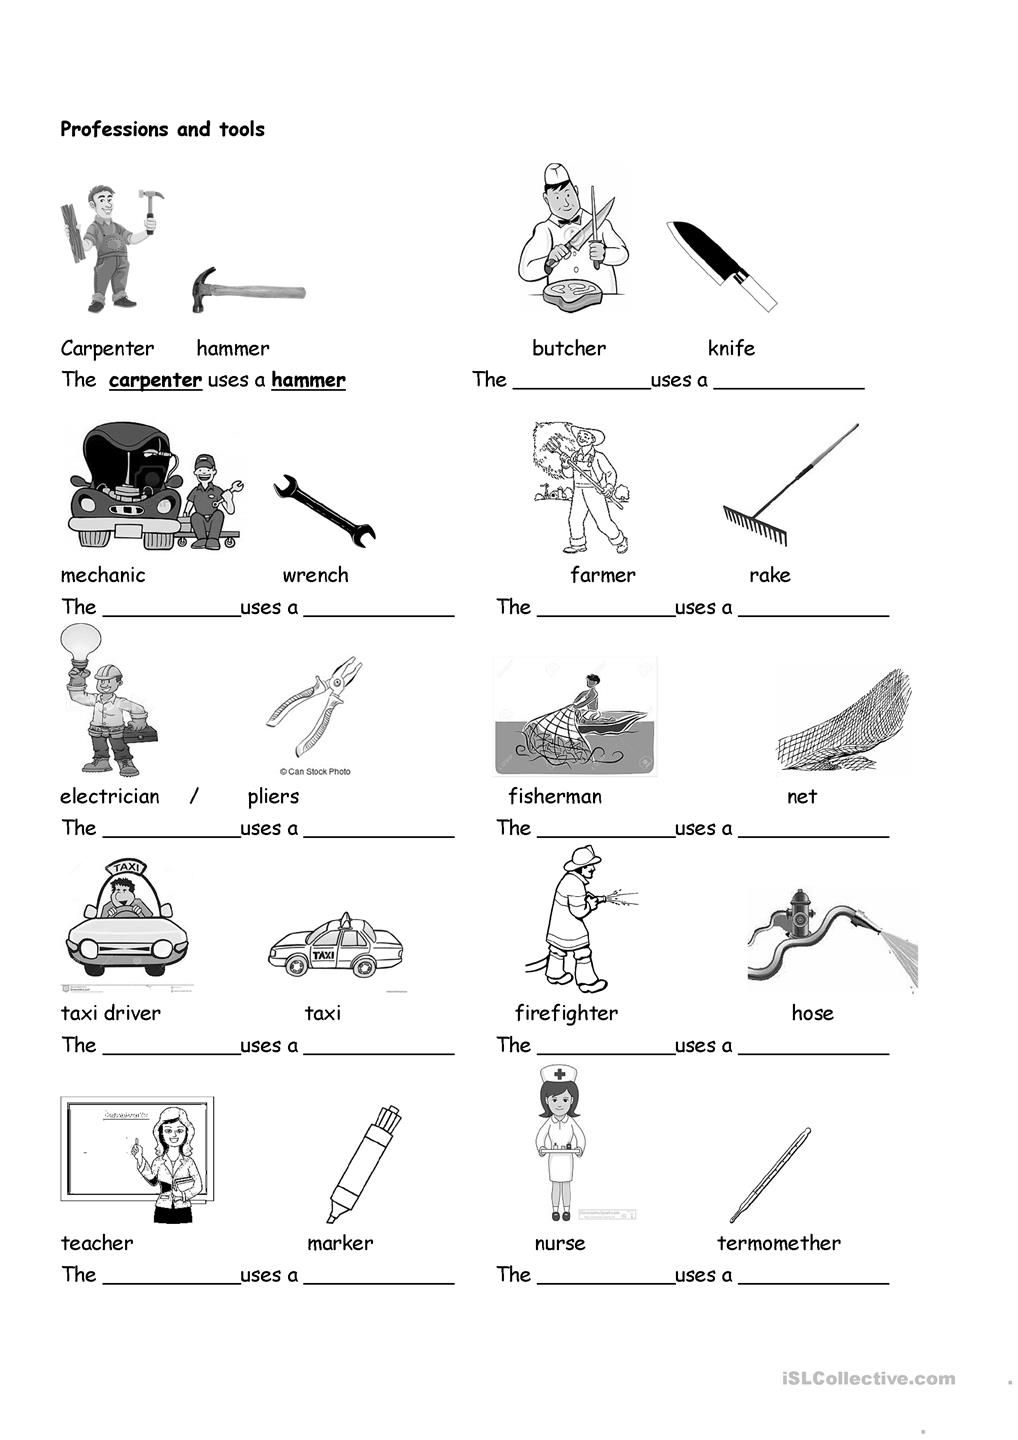 Professions And Tools Vocabulary Worksheets Life Skills Writing Practice Worksheets [ 1440 x 1018 Pixel ]